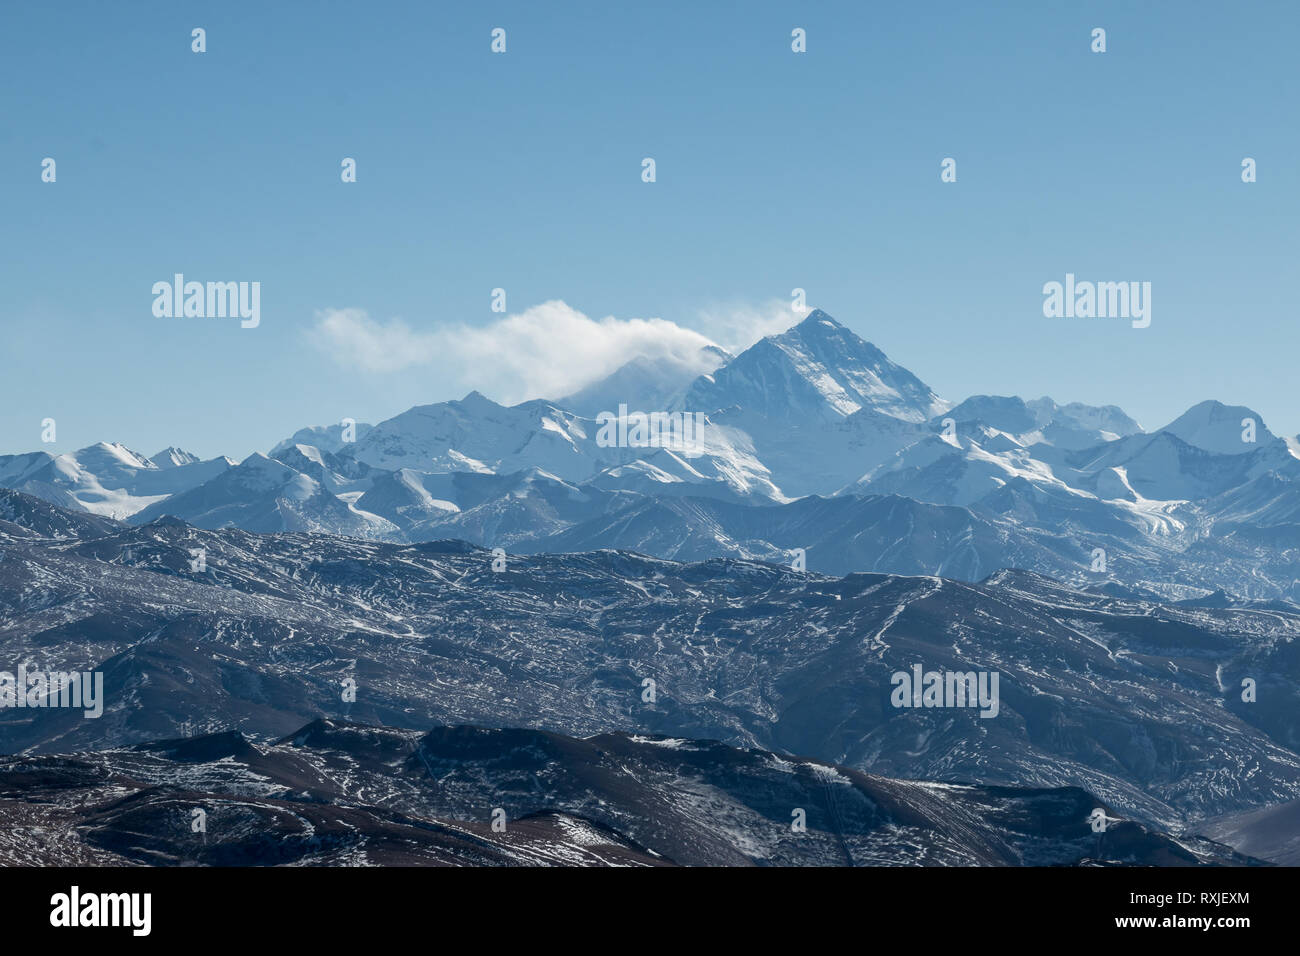 View of Mountain Everest, the highest peak on Earth, from the north (Tibet) side. - Stock Image